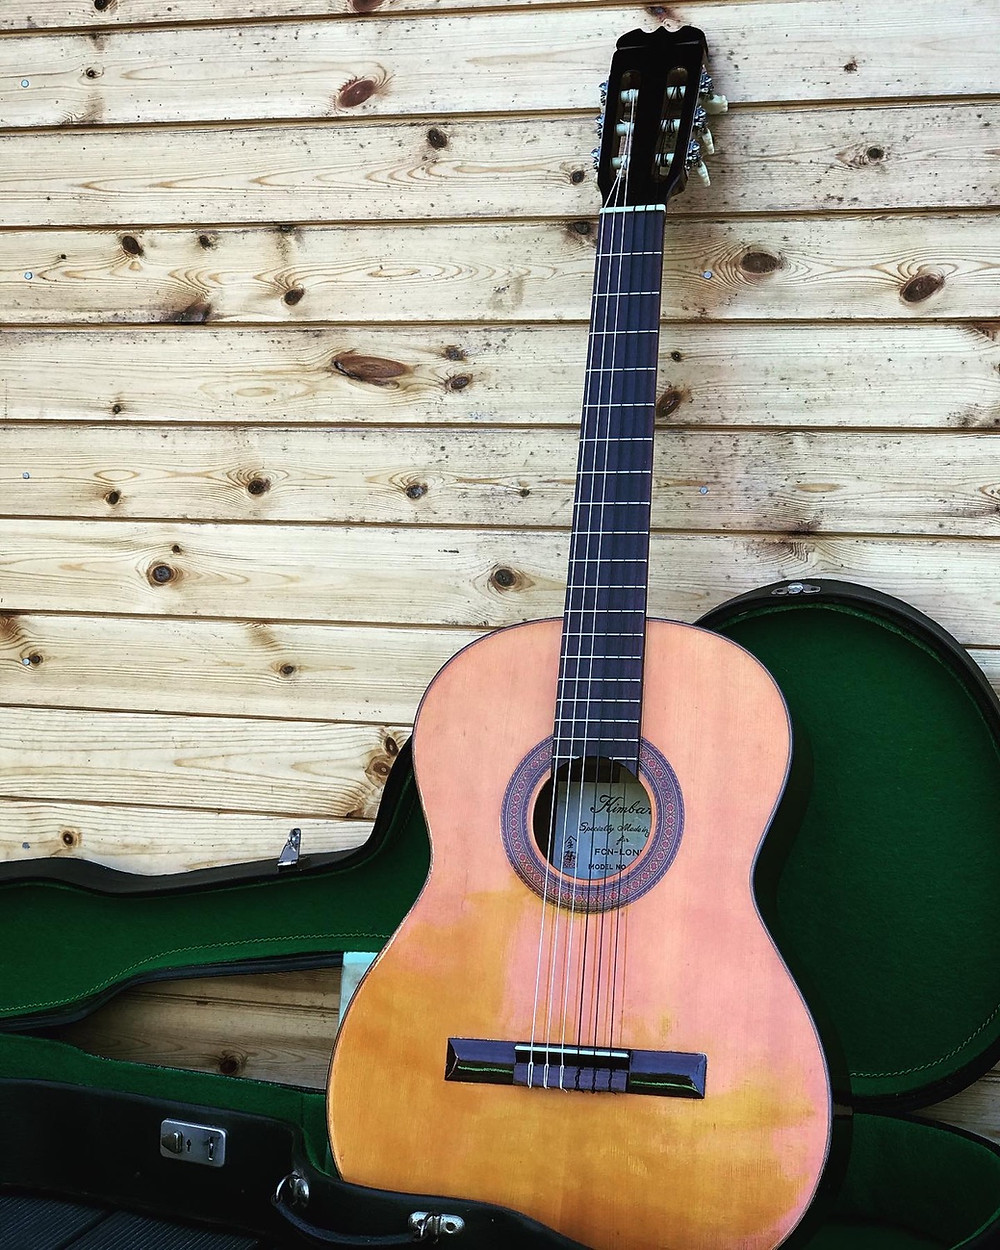 a 70s Japanese made Kimbara classical guitar in its case after a bridge repair and set up at Malone Guitars in Billericay Essex